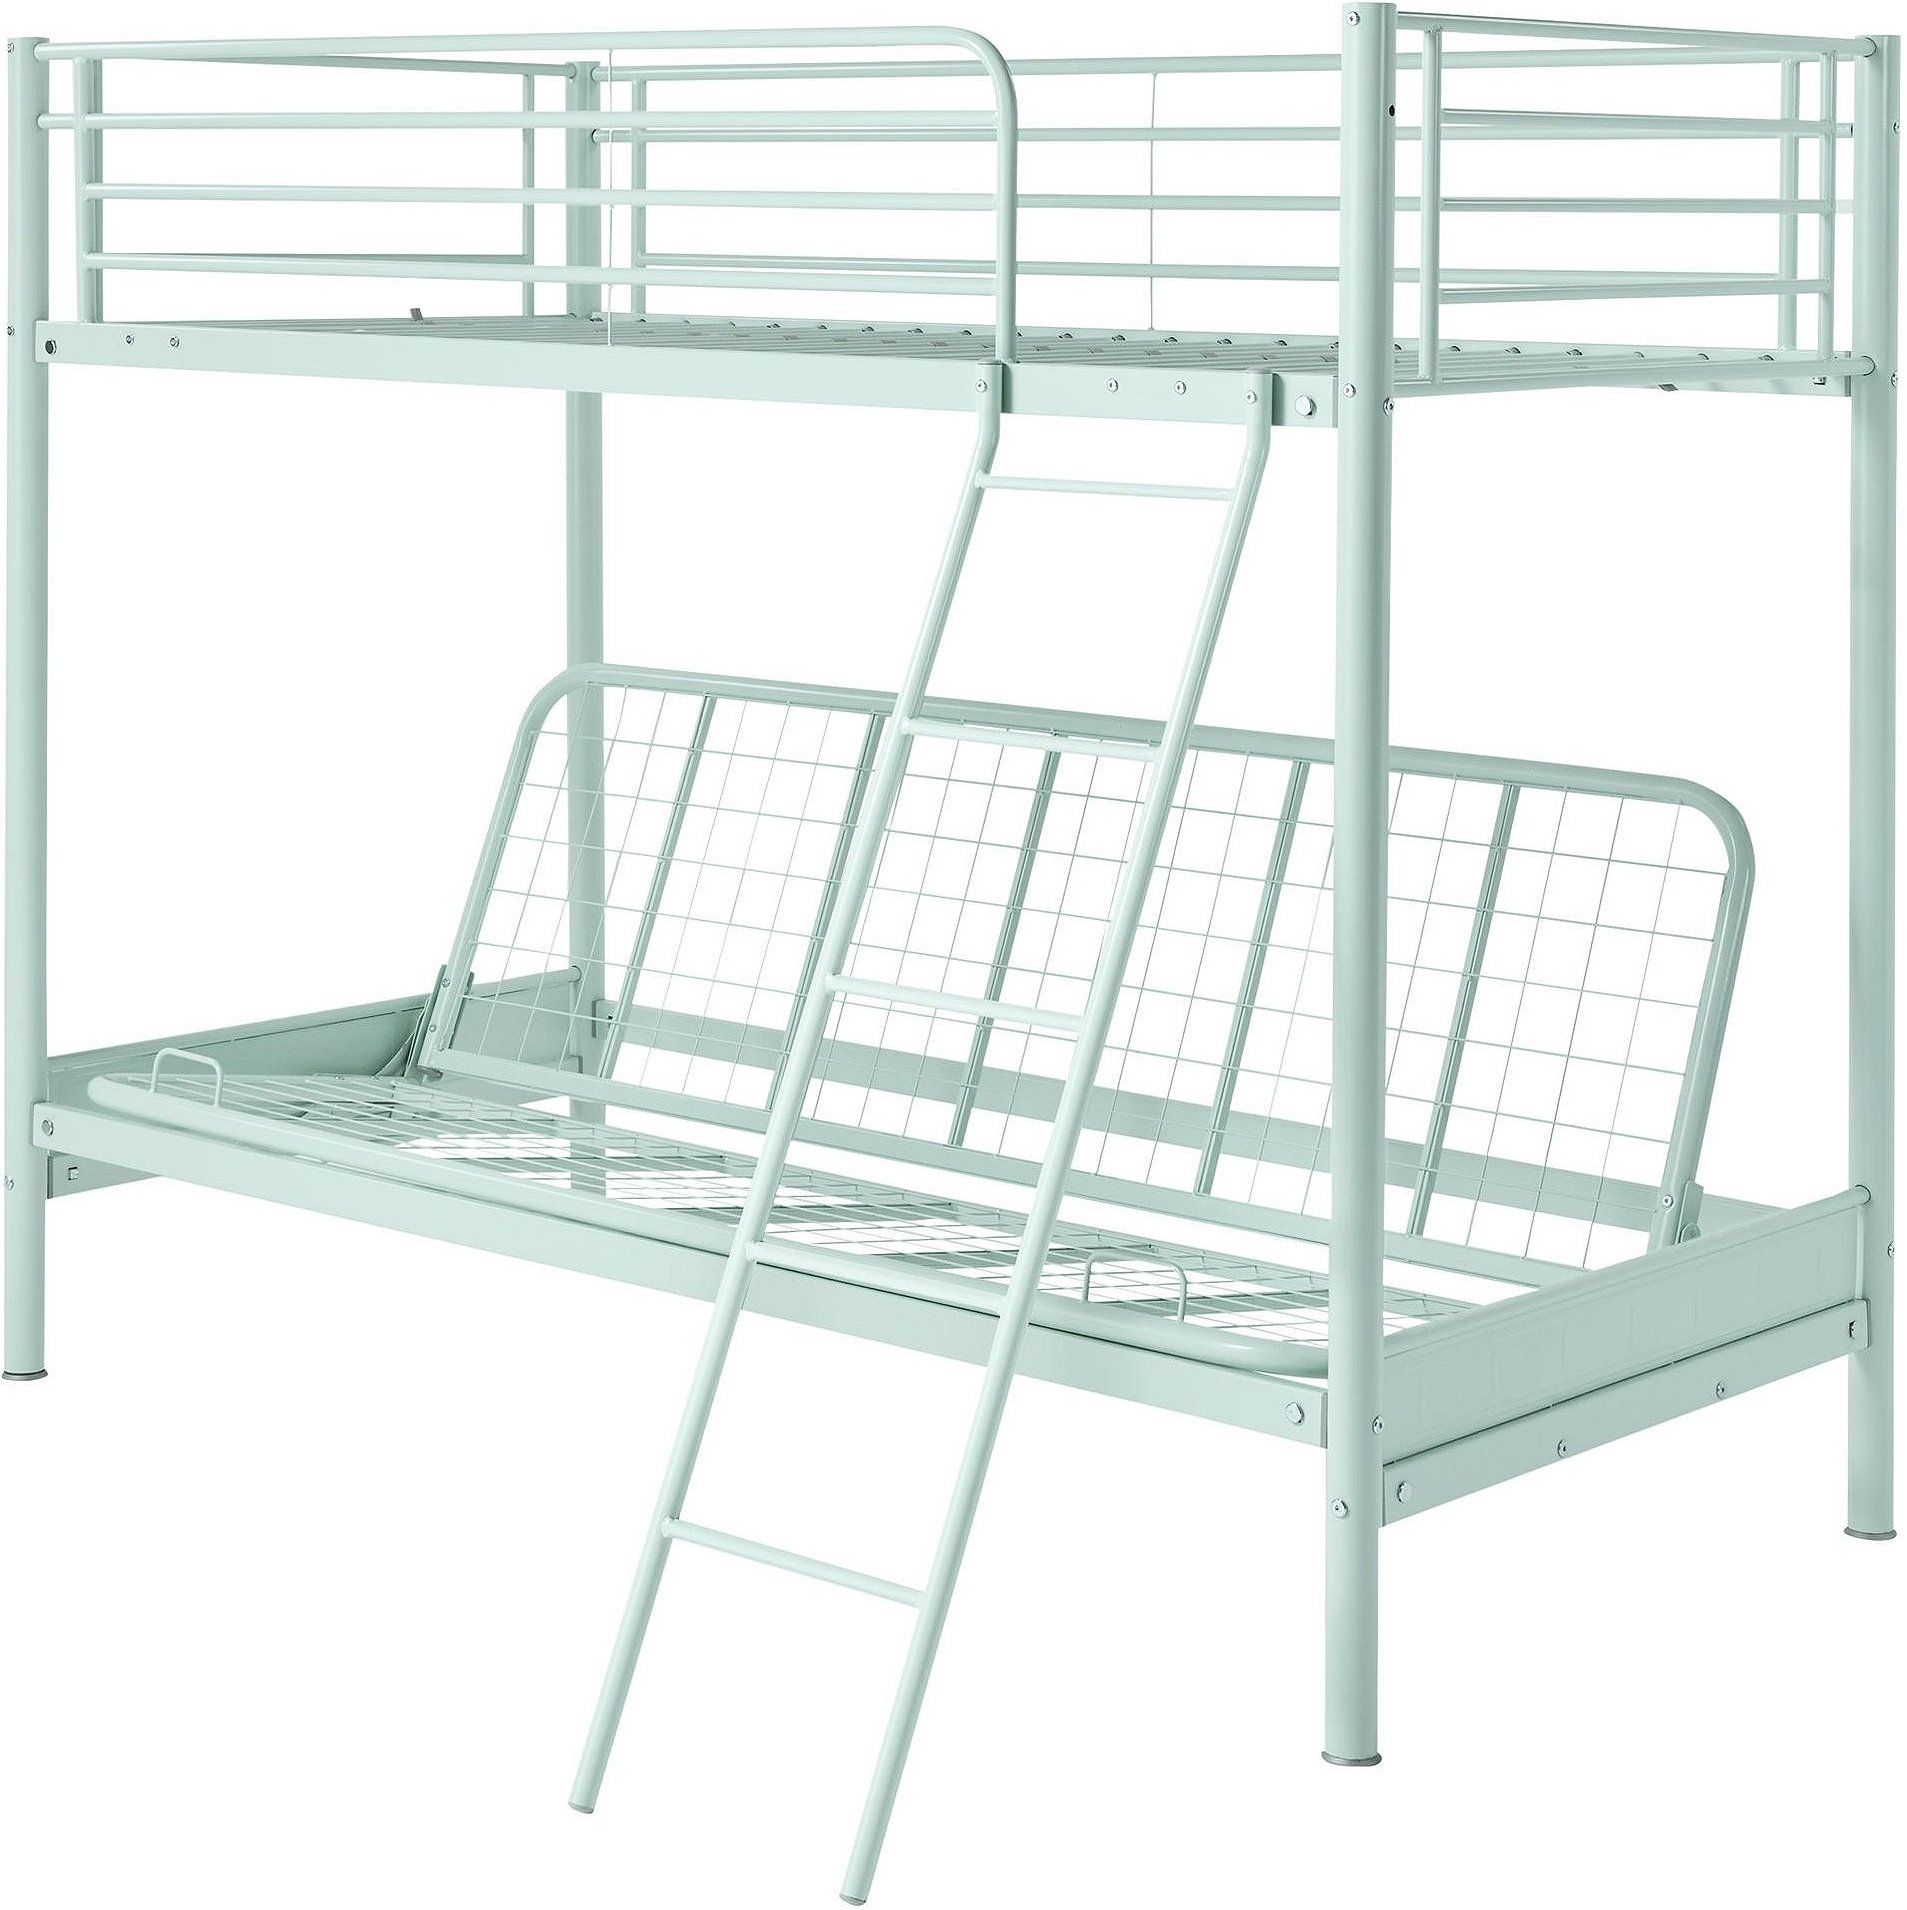 Tesco Mika Metal Frame Single Bunk Bed With Double Pull Out Futon Mint Buy Online In Isle Of Man At Isleofman Desertcart Com Productid 69562026